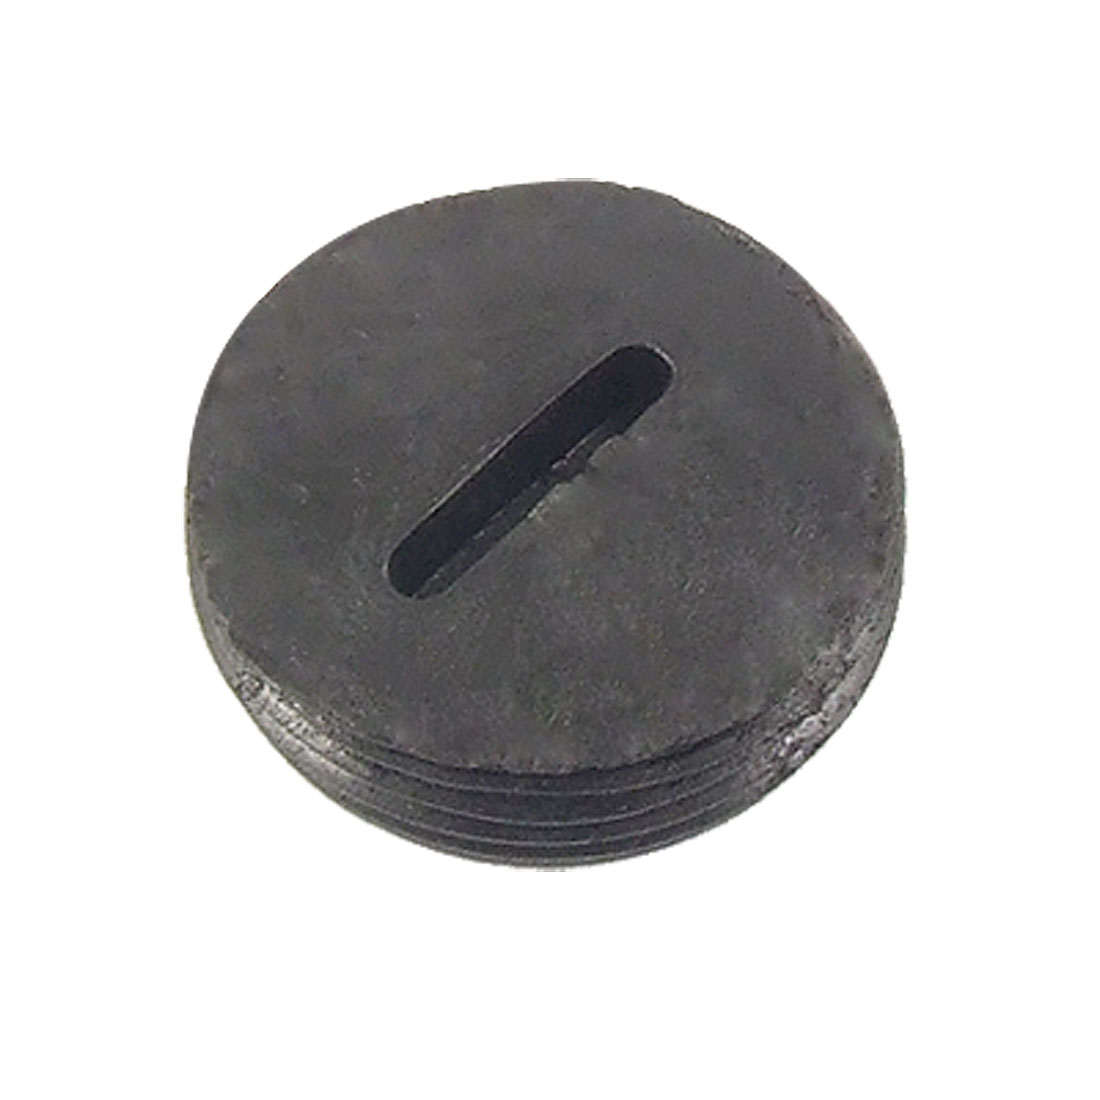 10 Pcs 18.5mm Diameter Motor Carbon Brush Holder Cap